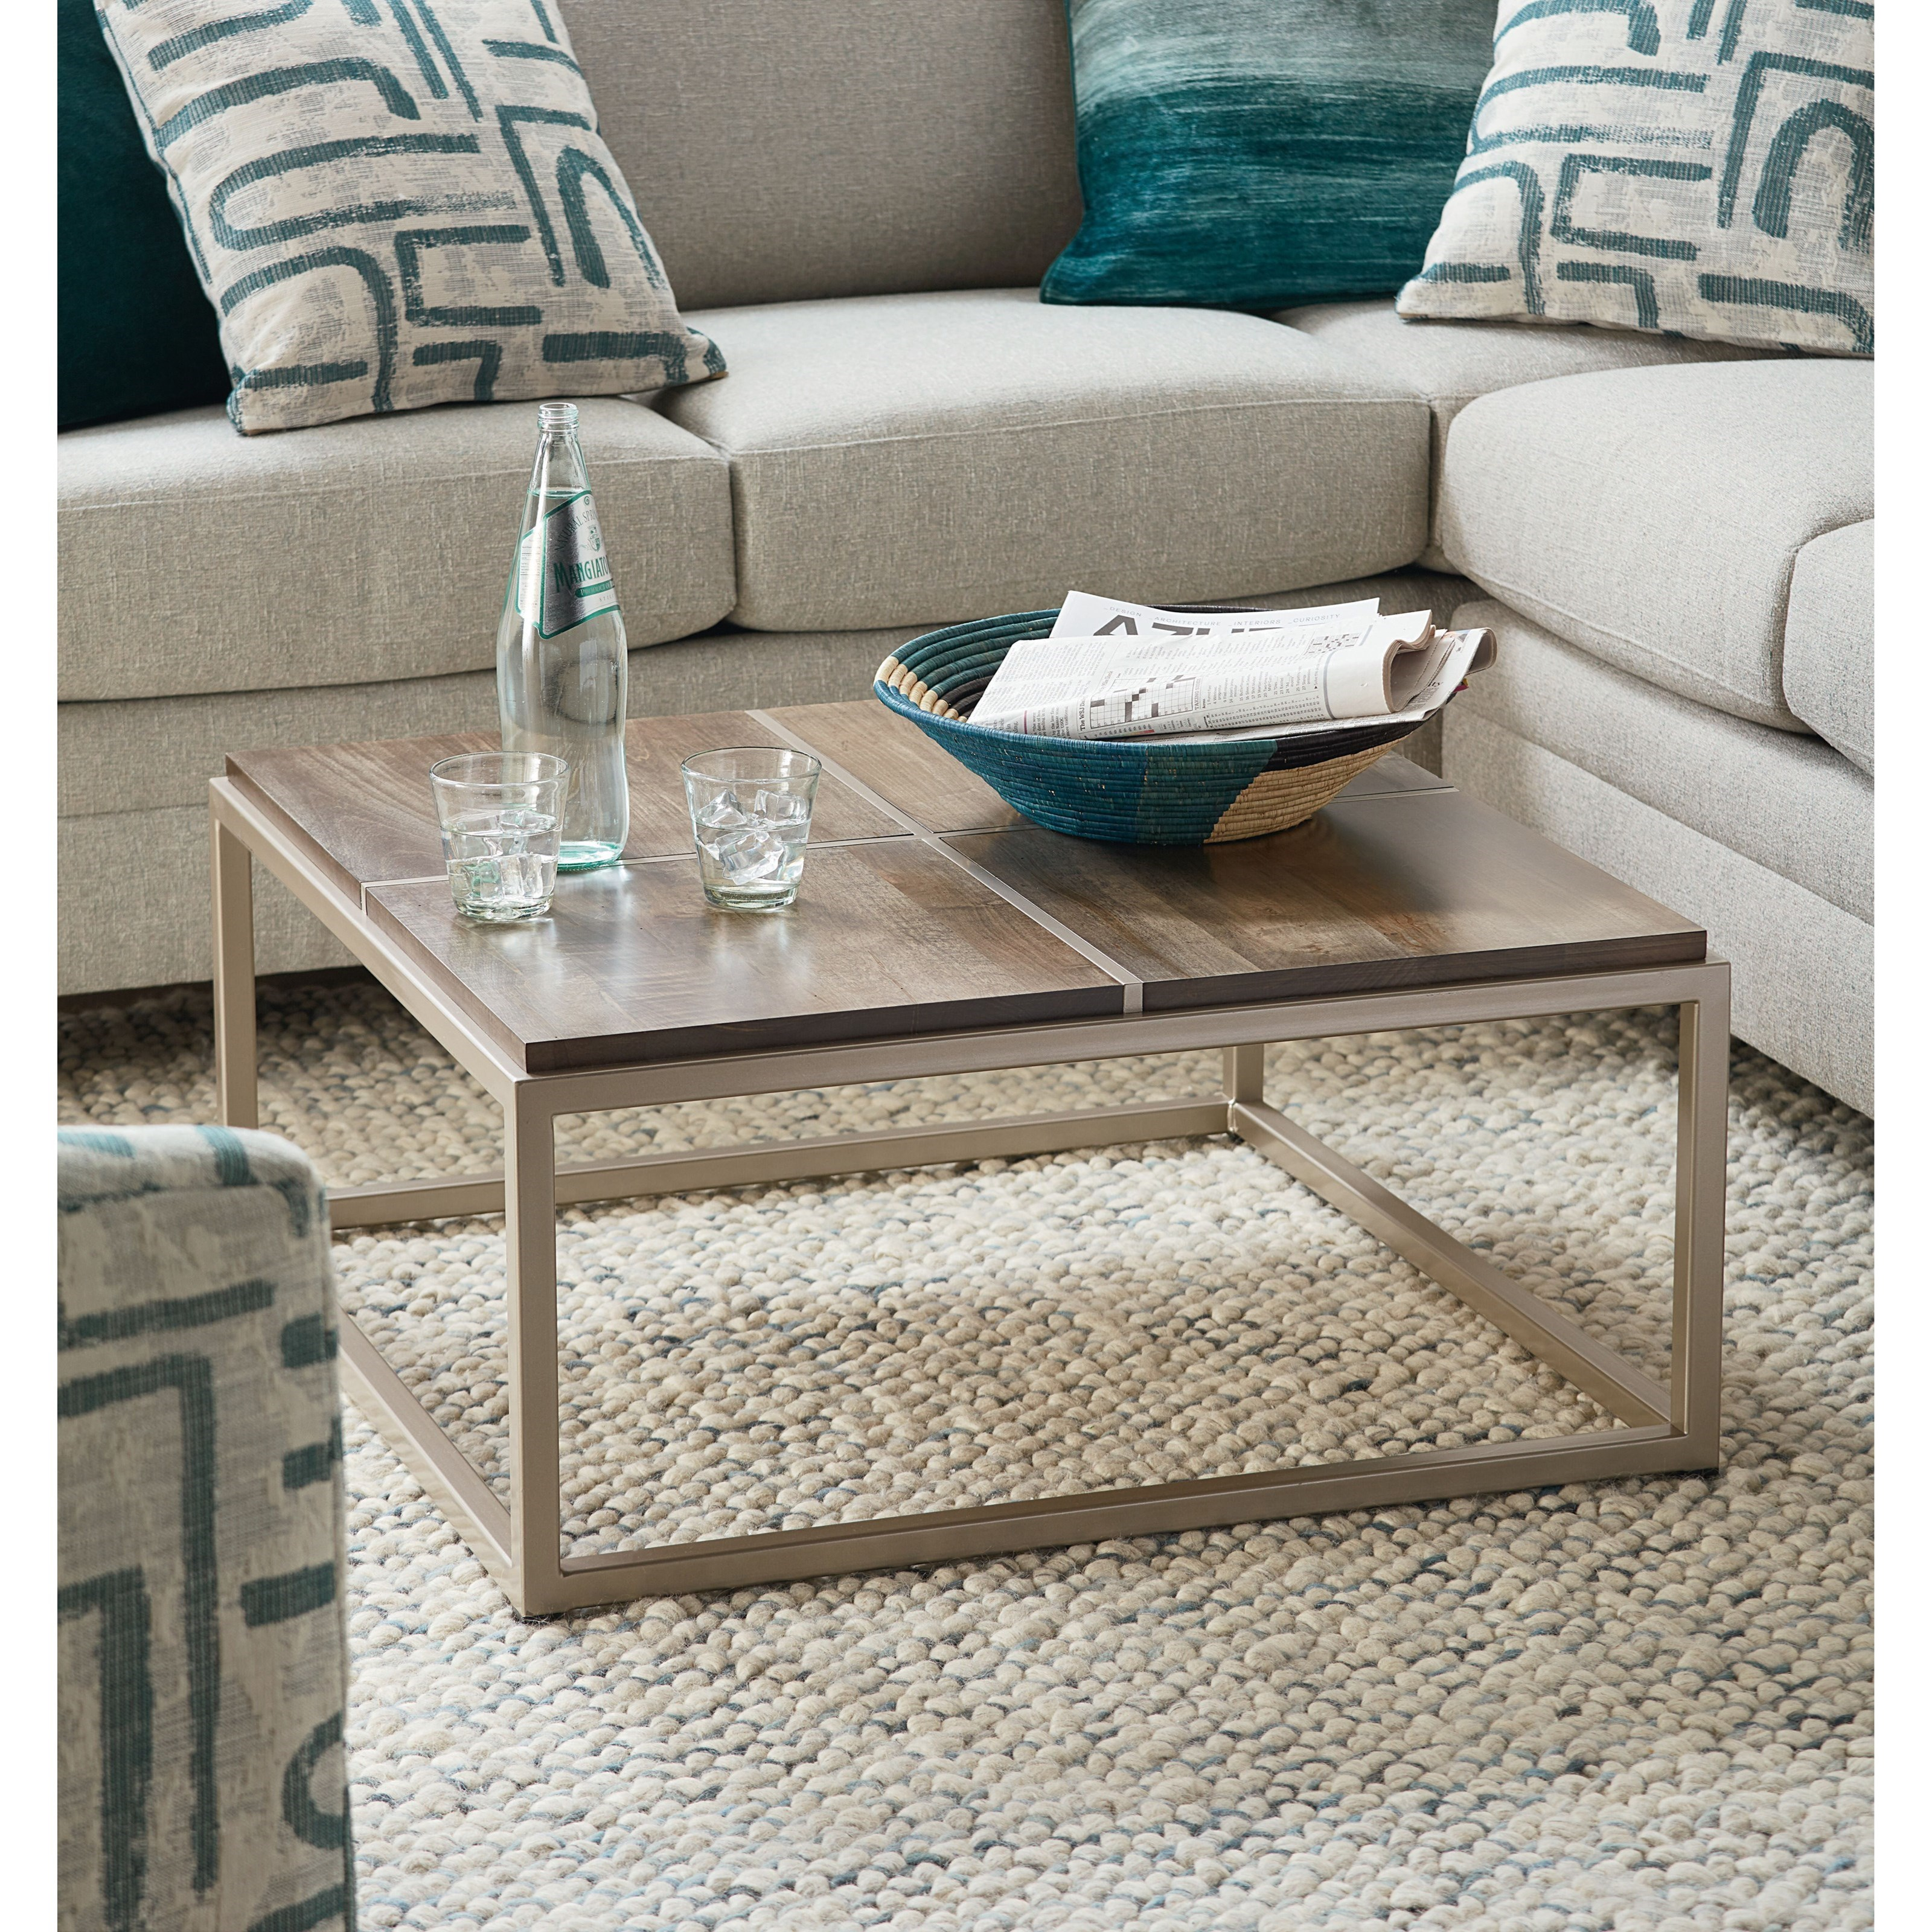 BenchMade Midtown Coffee Table by Bassett at Bassett of Cool Springs